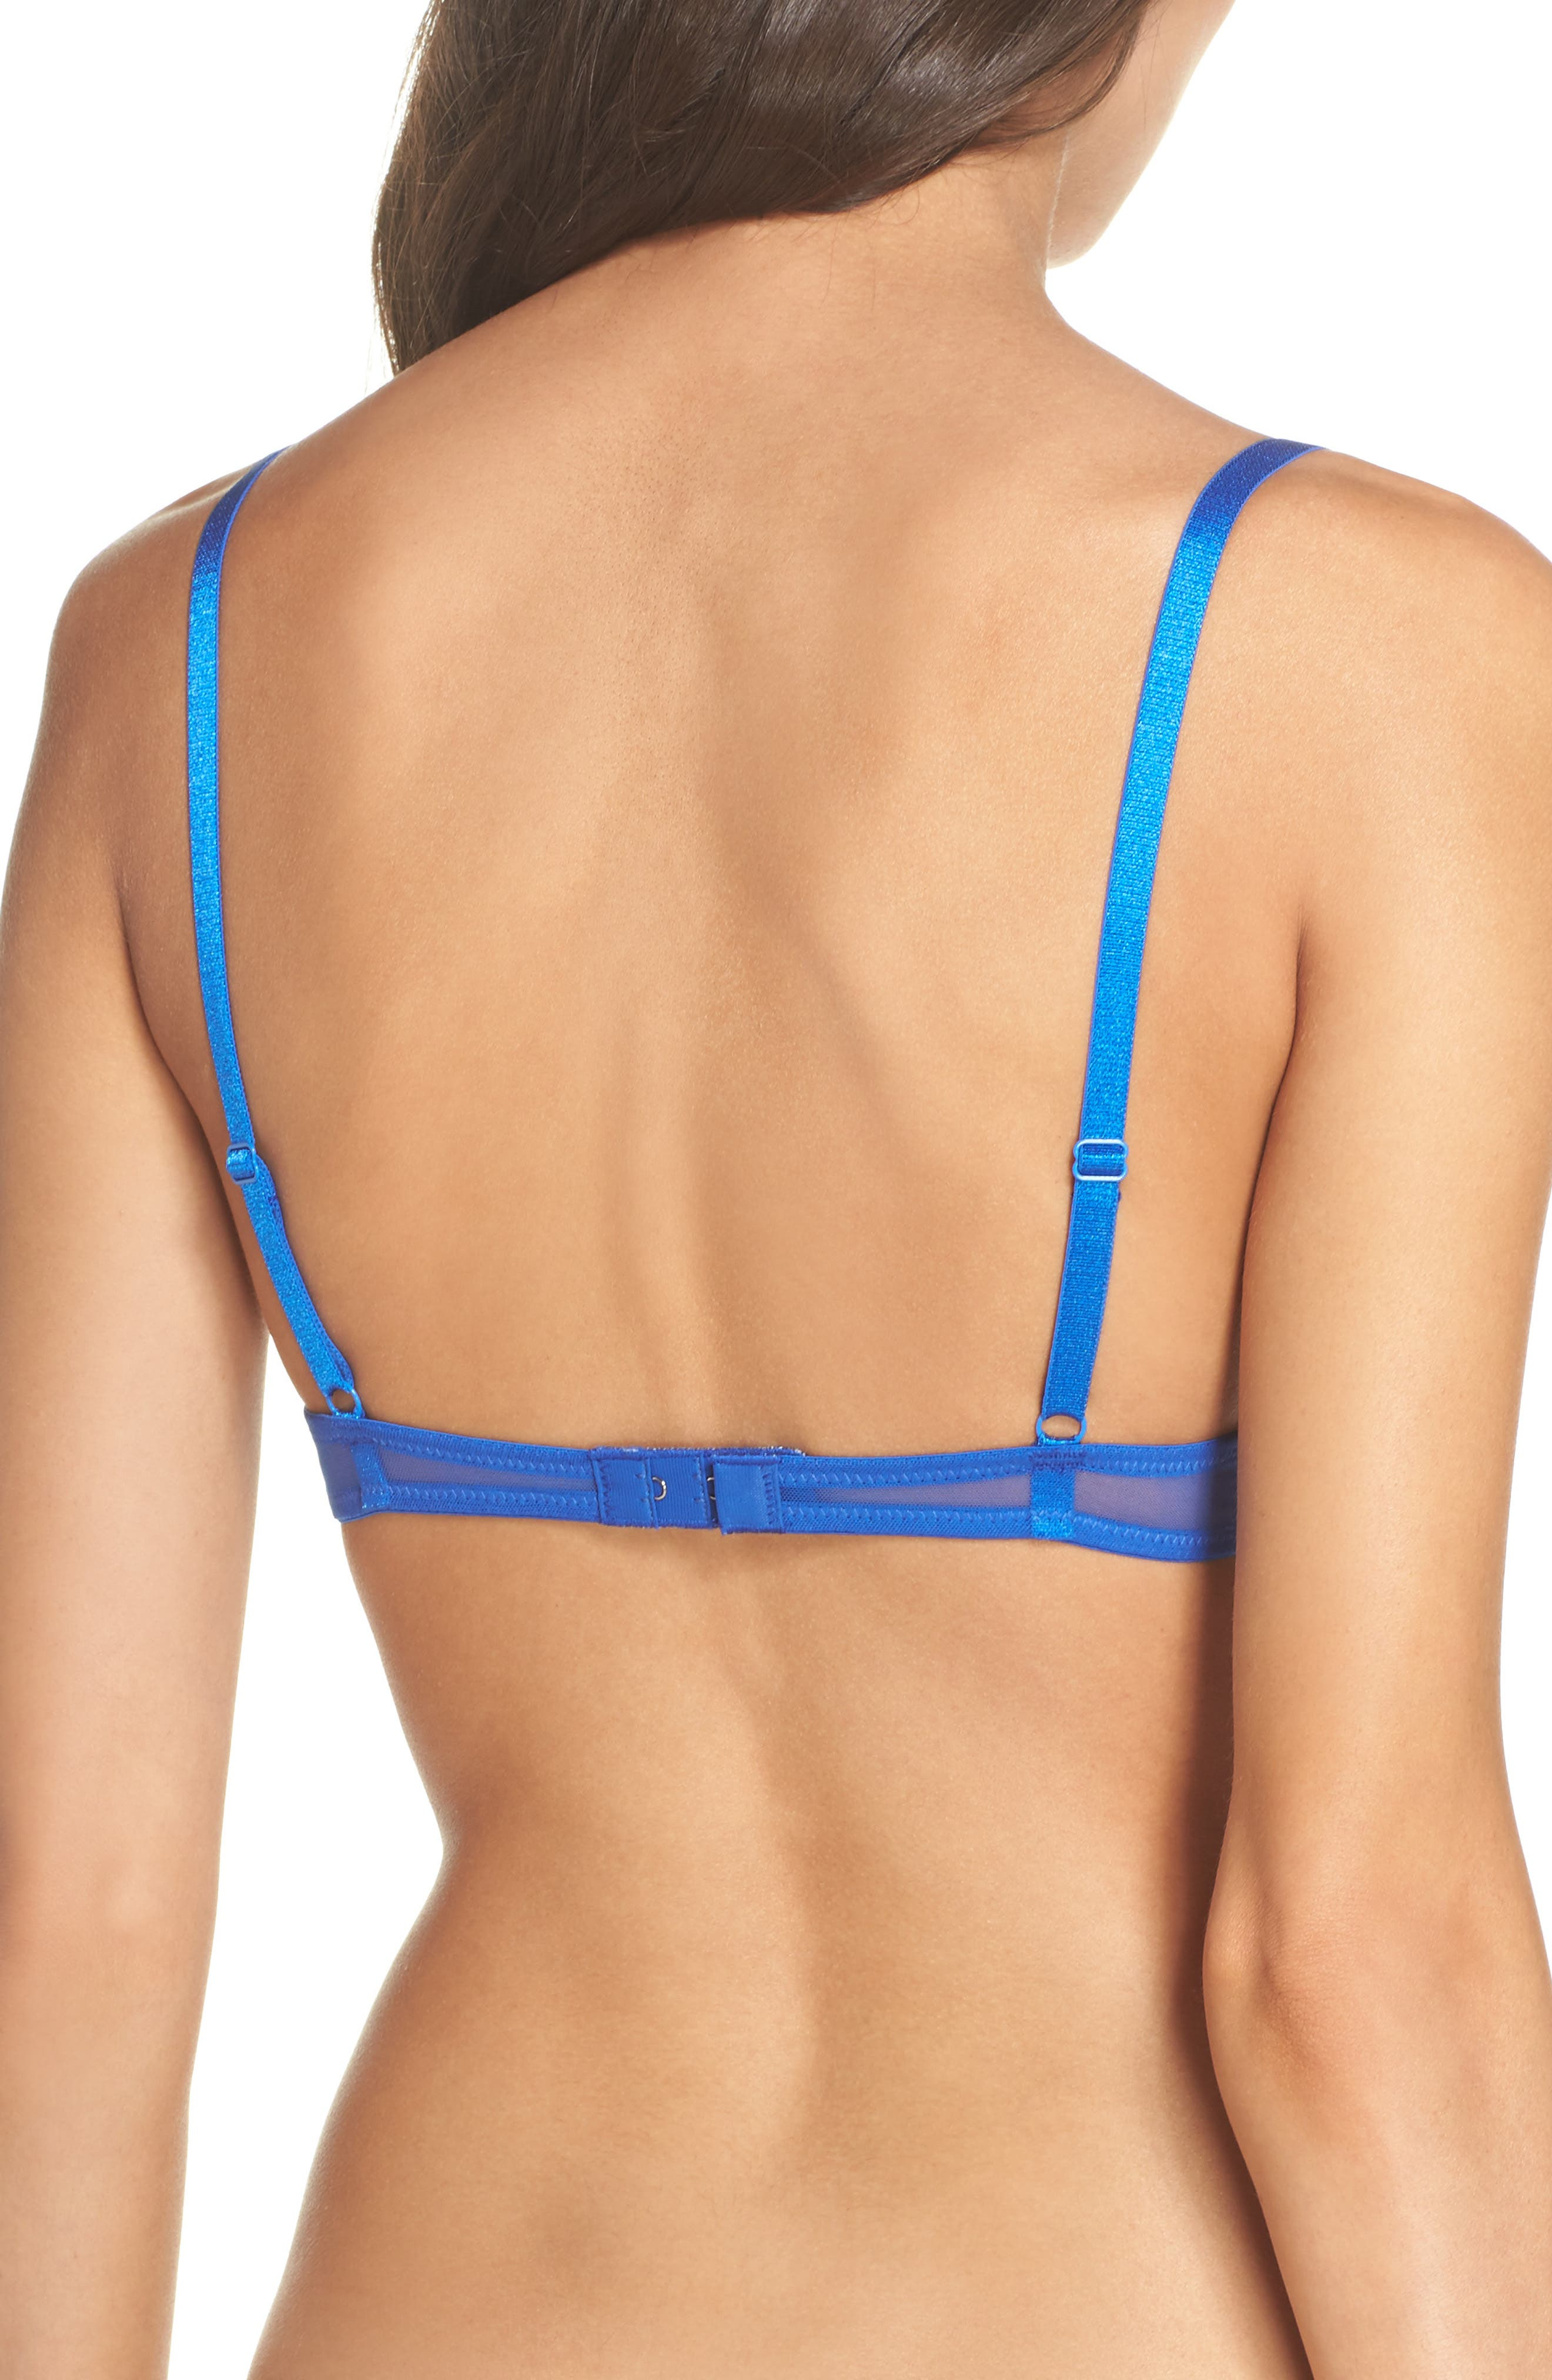 Intimately FP Mesh Underwire Bra,                             Alternate thumbnail 7, color,